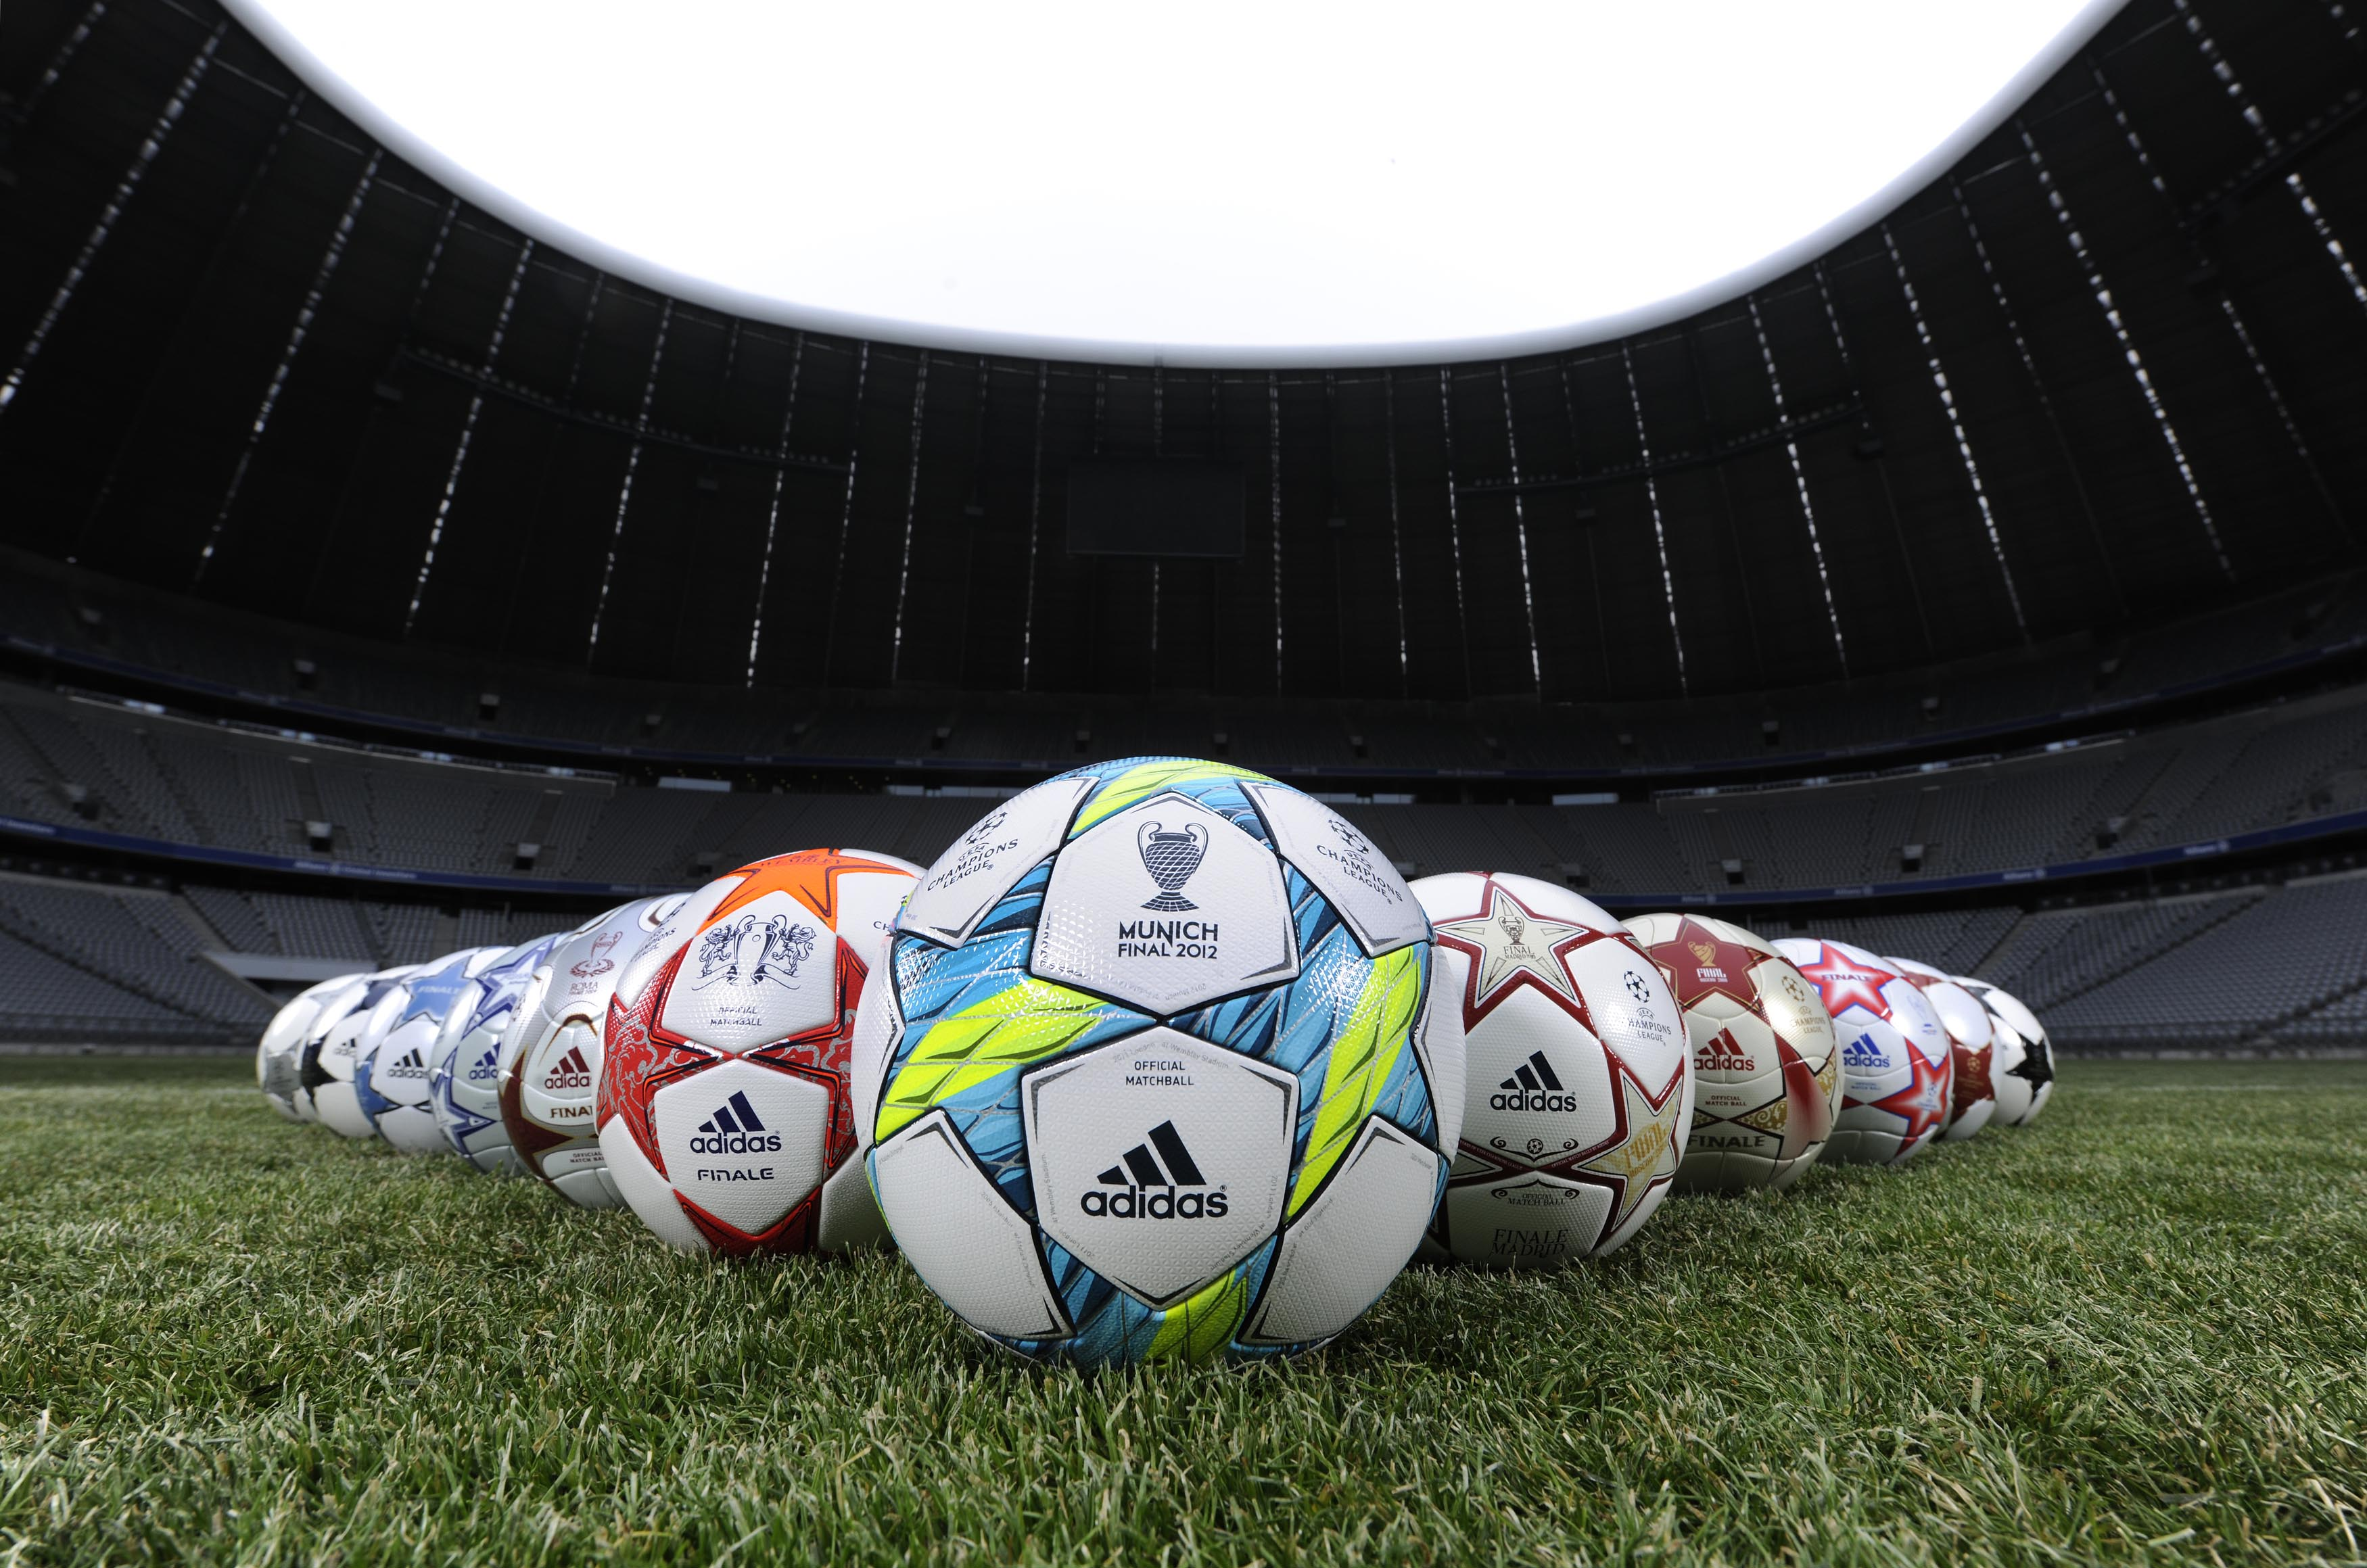 Champions: Champions League Football Release: Adidas Finale Munich